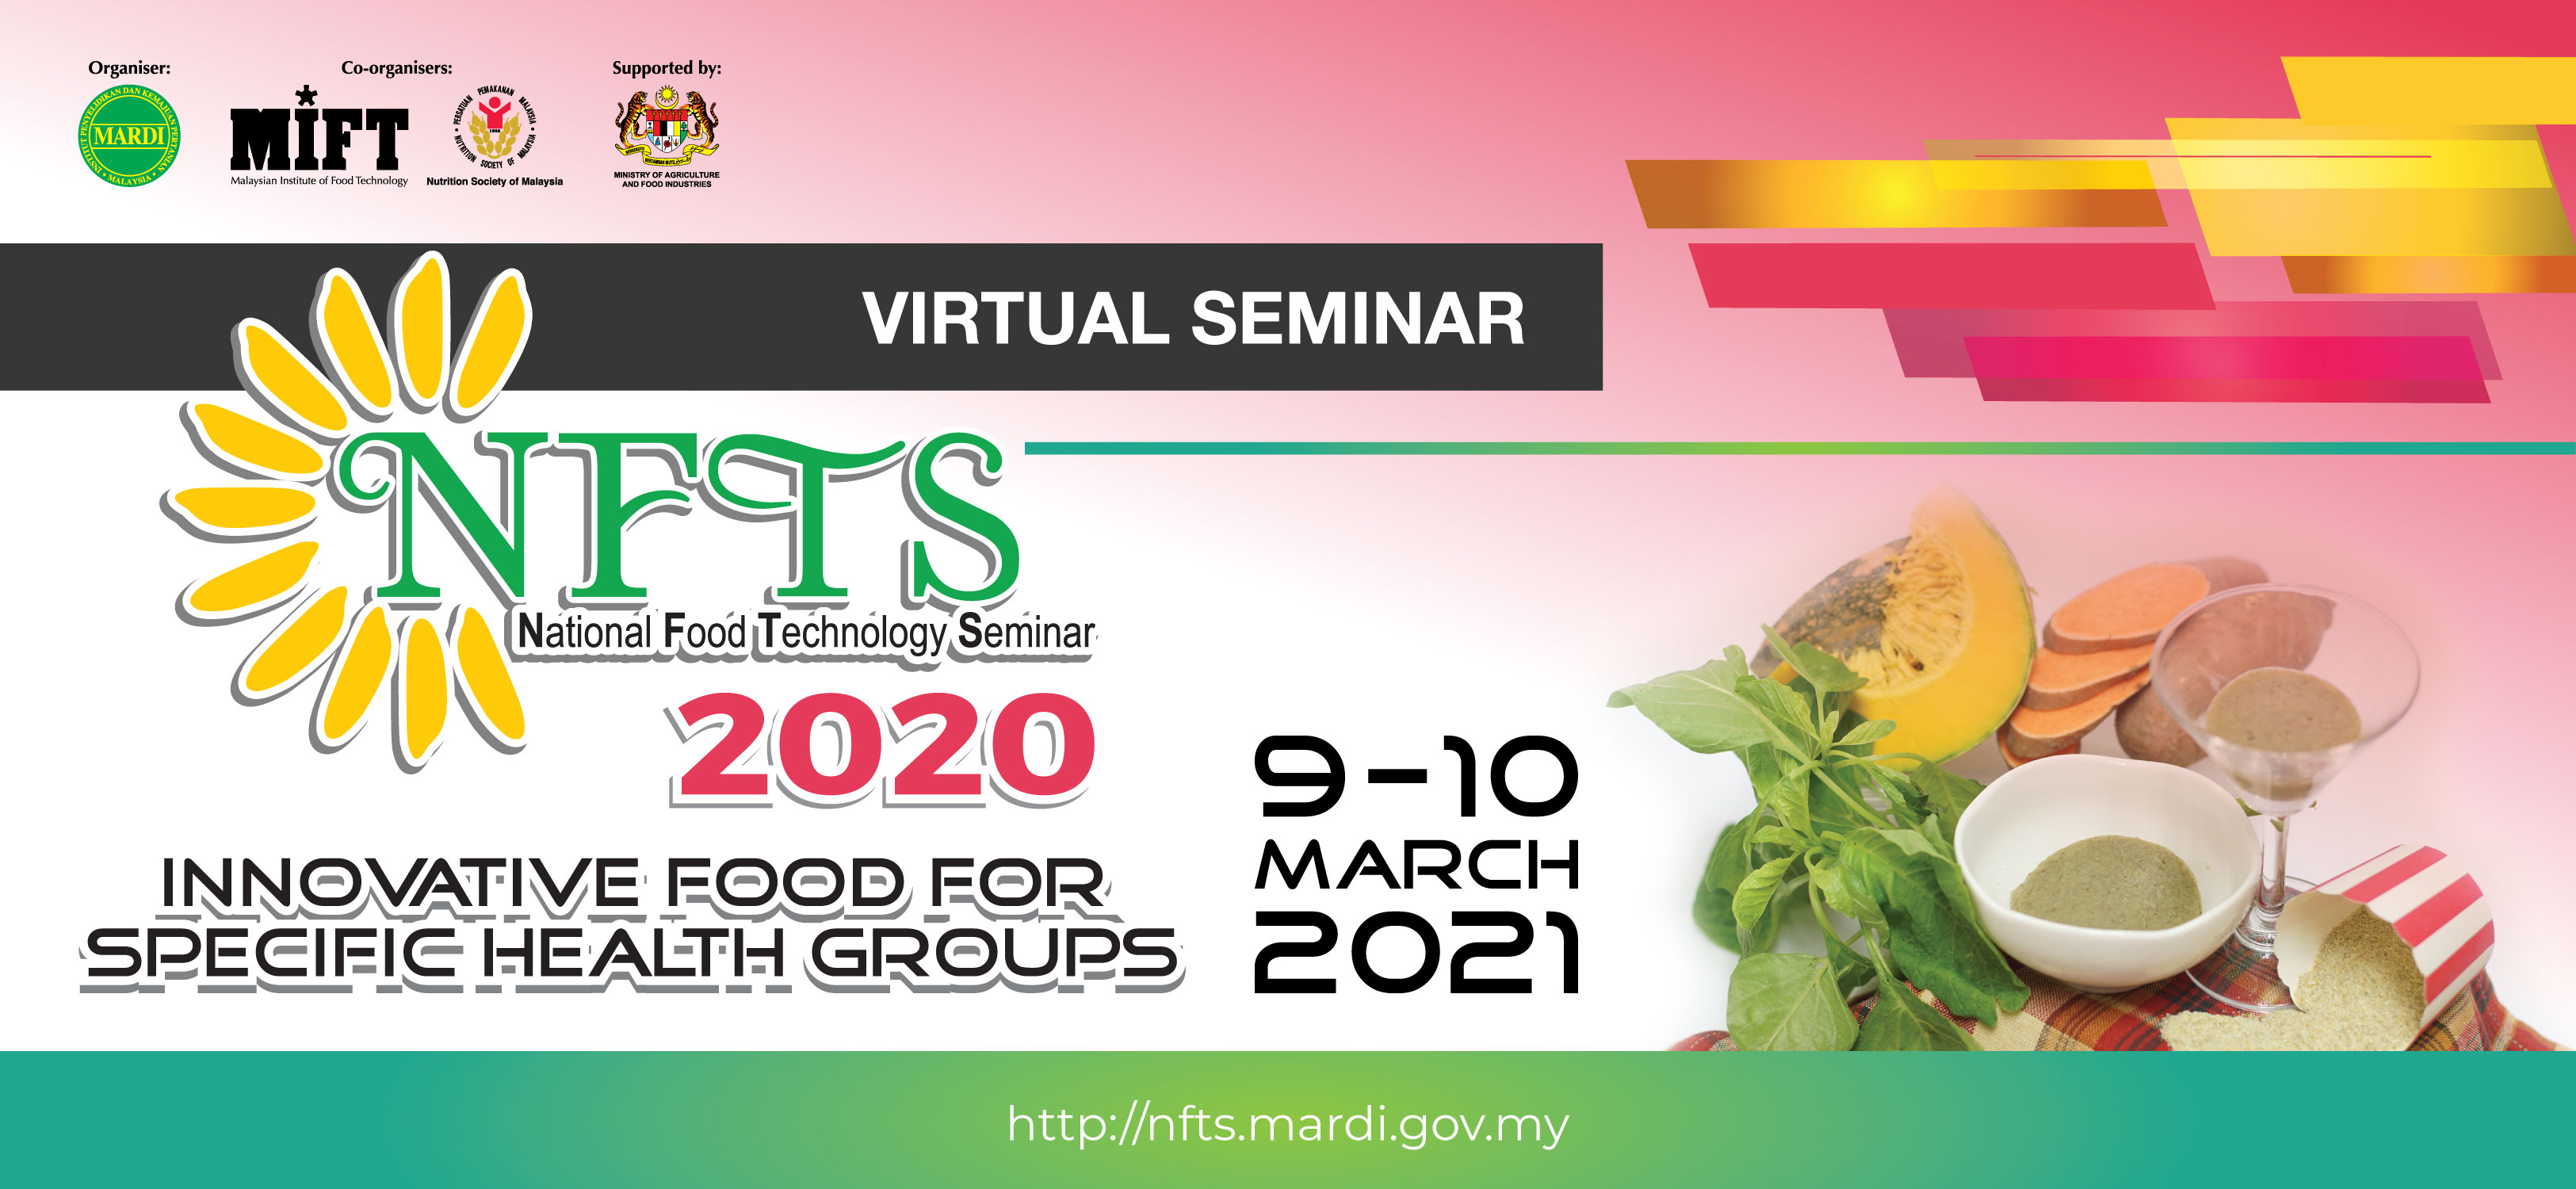 NATIONAL FOOD TECHNOLOGY SEMINAR (NFTS) 2021 , INNOVATIVE FOOD FOR SPECIFIC HEALTH GROUPS, 9 -10 MARCH 2021